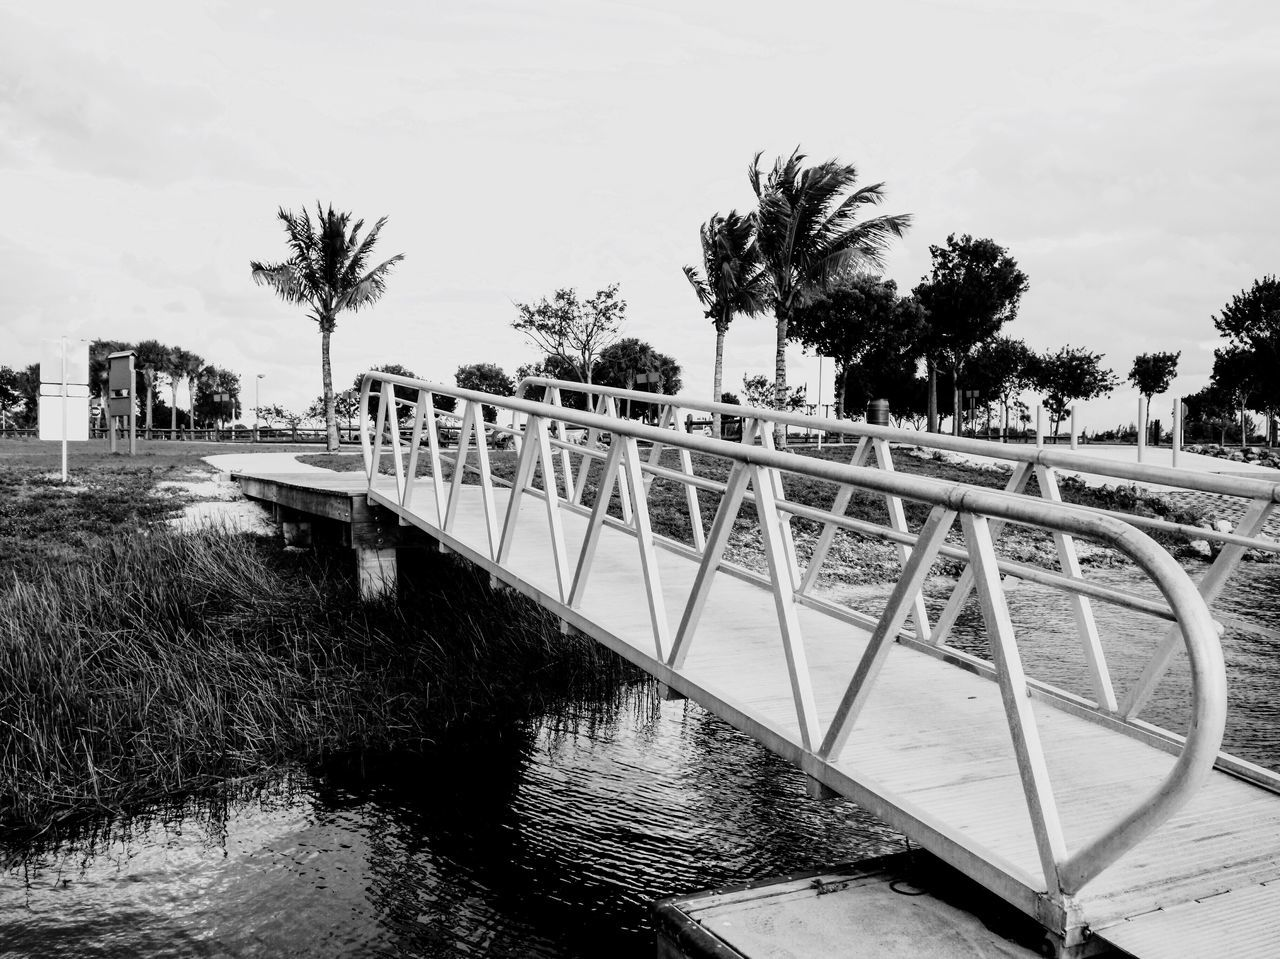 tree, water, built structure, railing, architecture, outdoors, sky, palm tree, day, building exterior, no people, nature